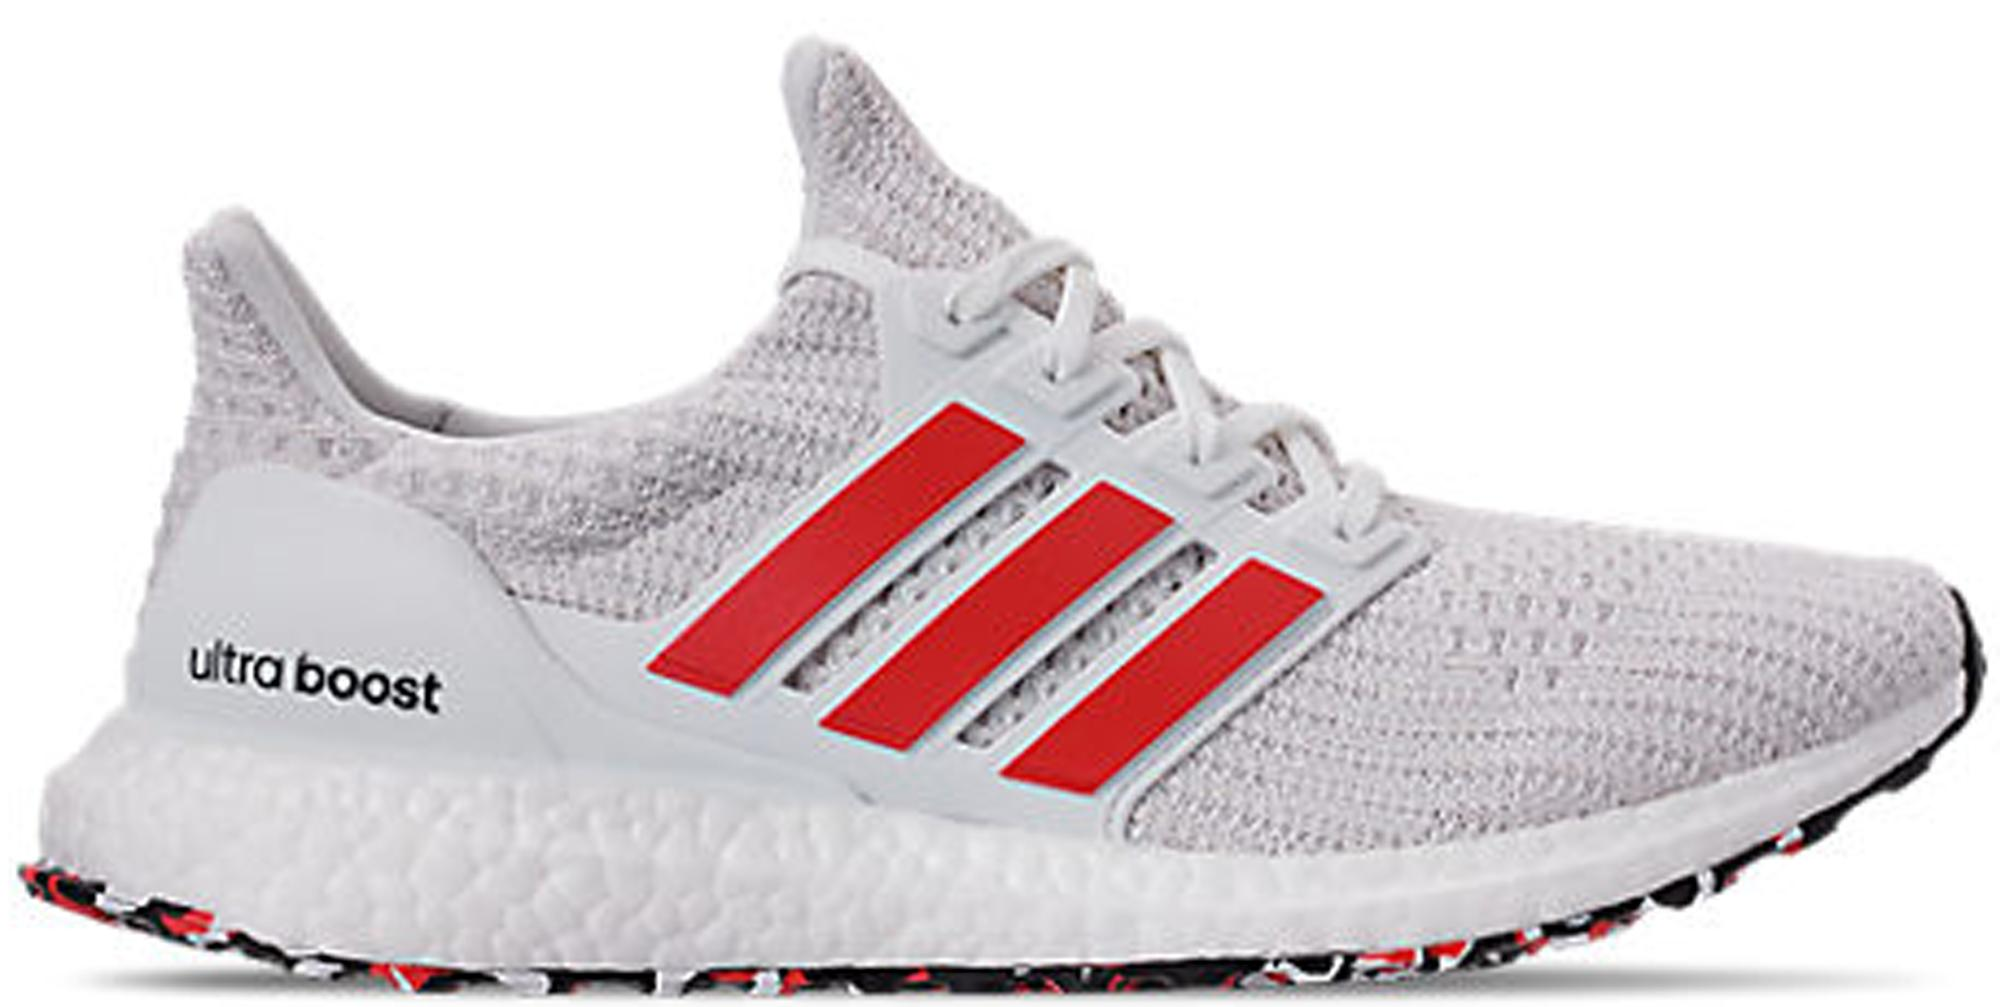 adidas ultra boost 2019 cloud white active red